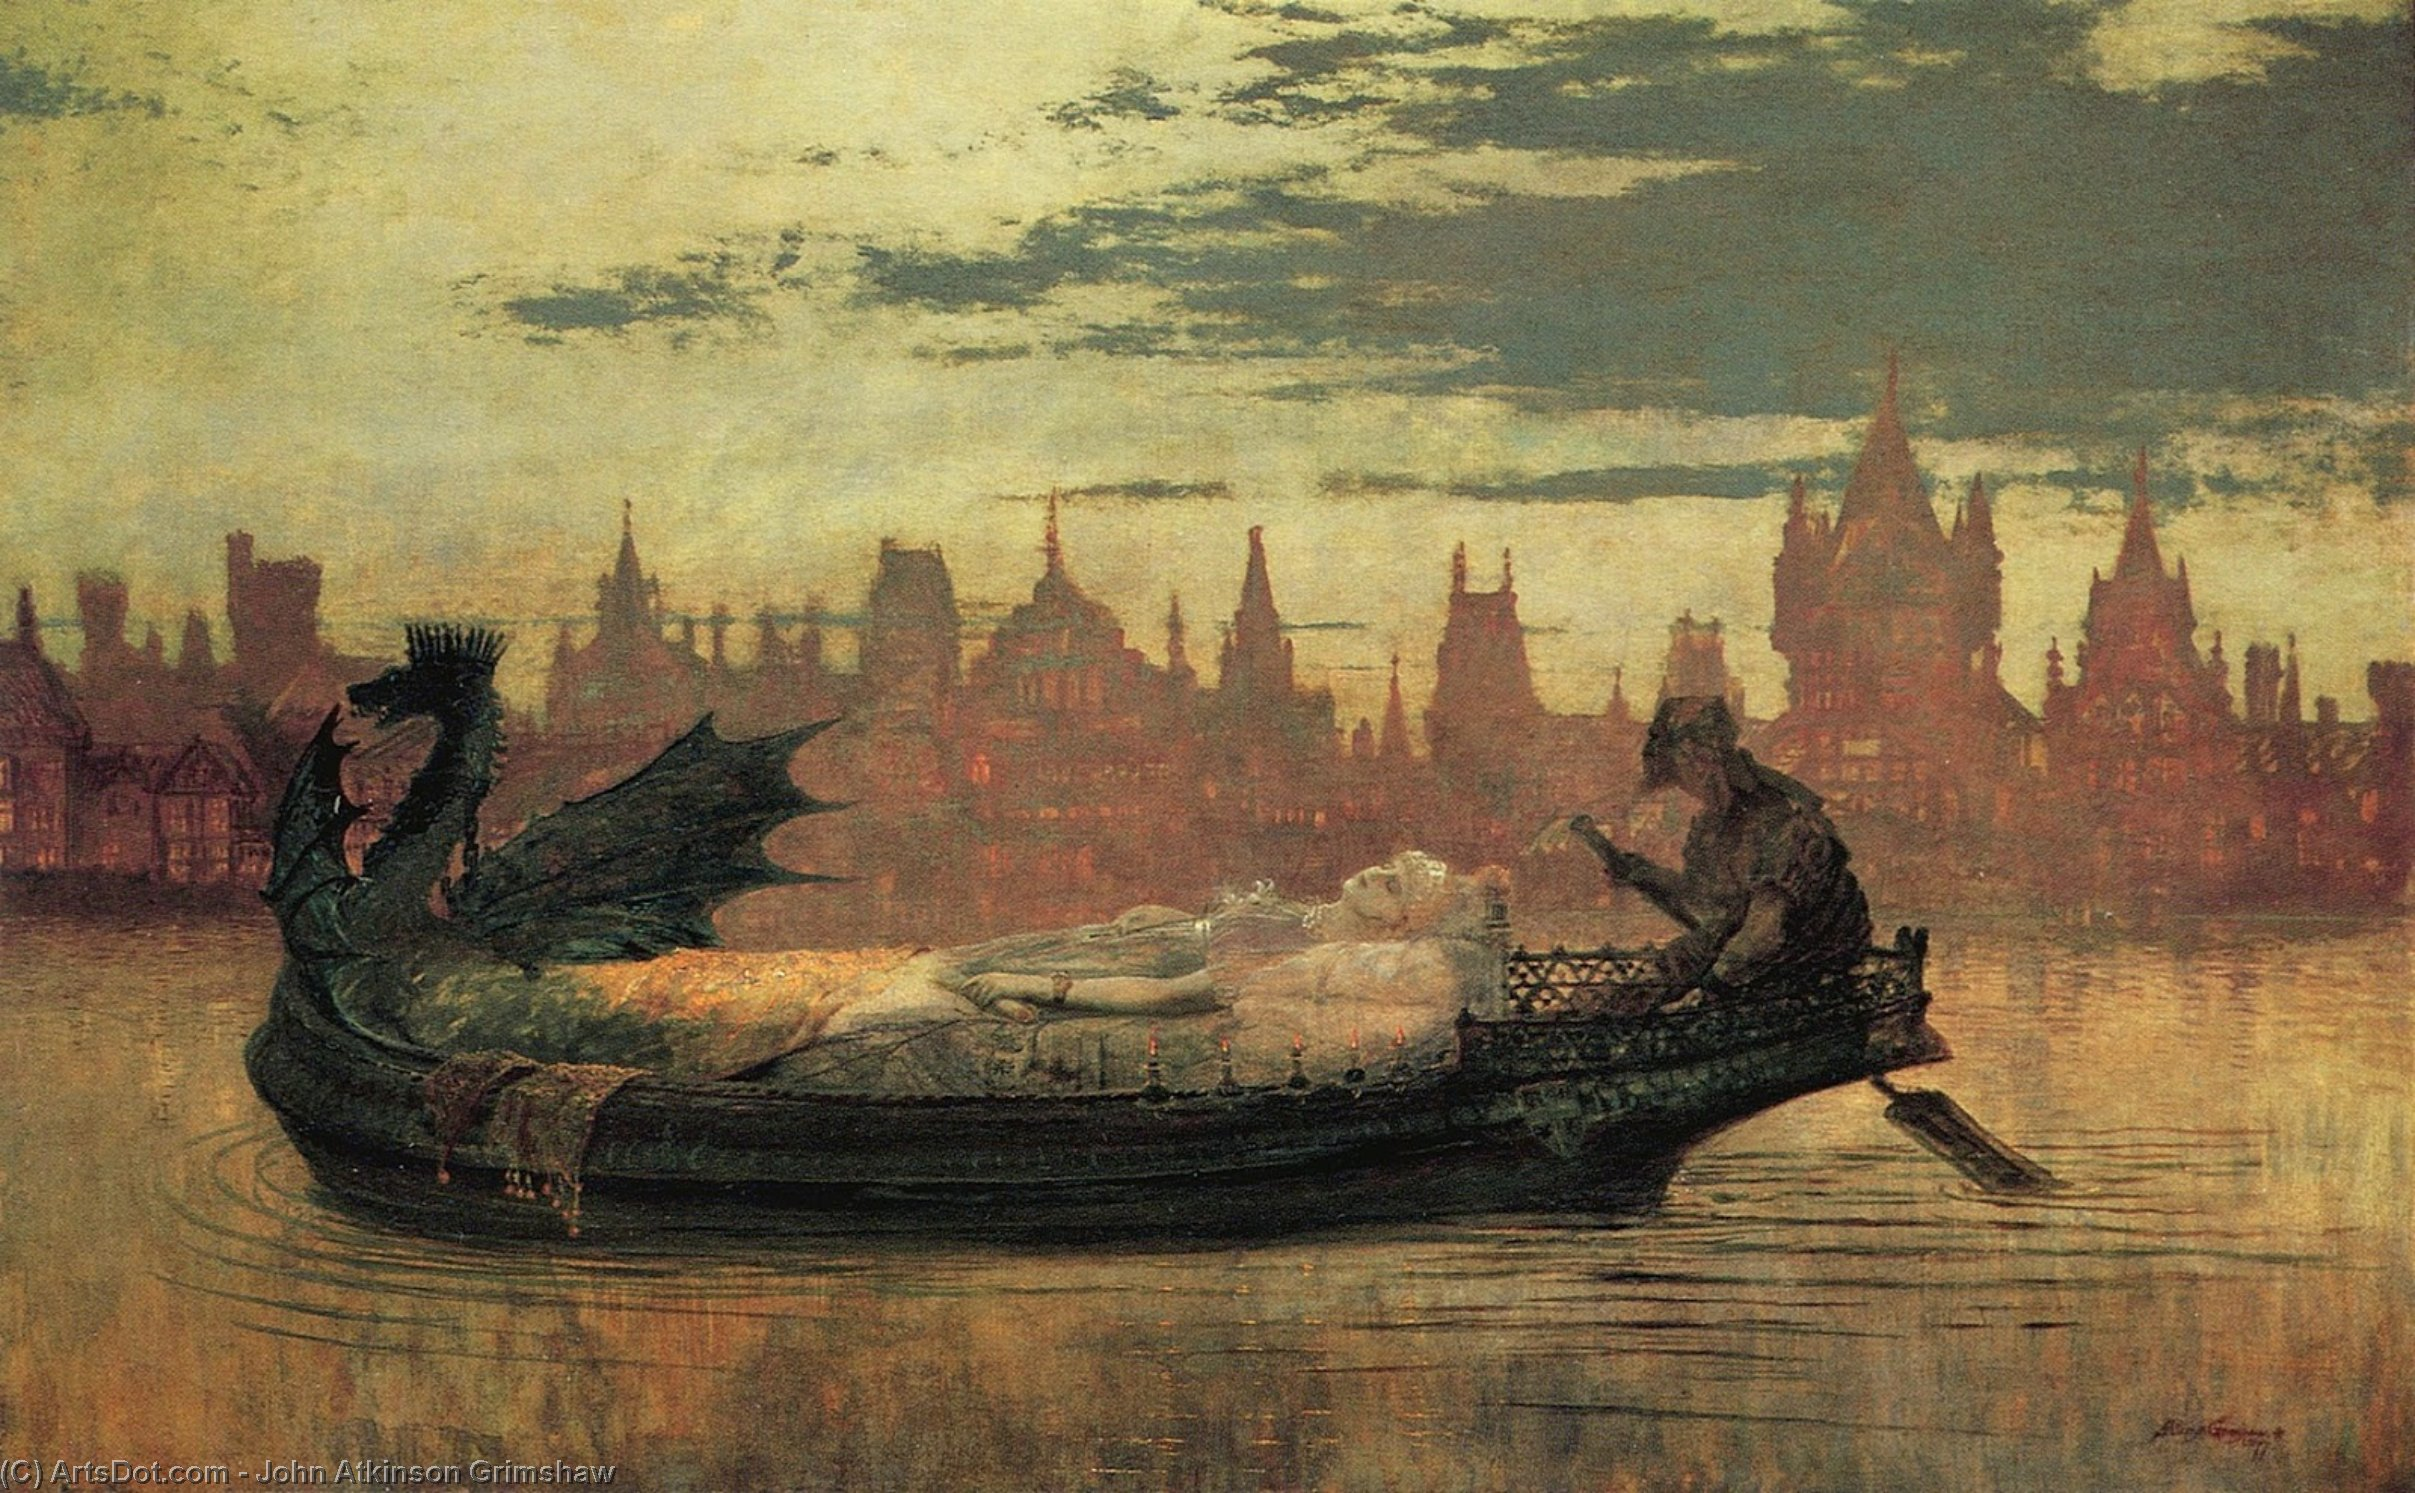 Elaine1 AMK 通过 John Atkinson Grimshaw (1836-1893, United Kingdom)